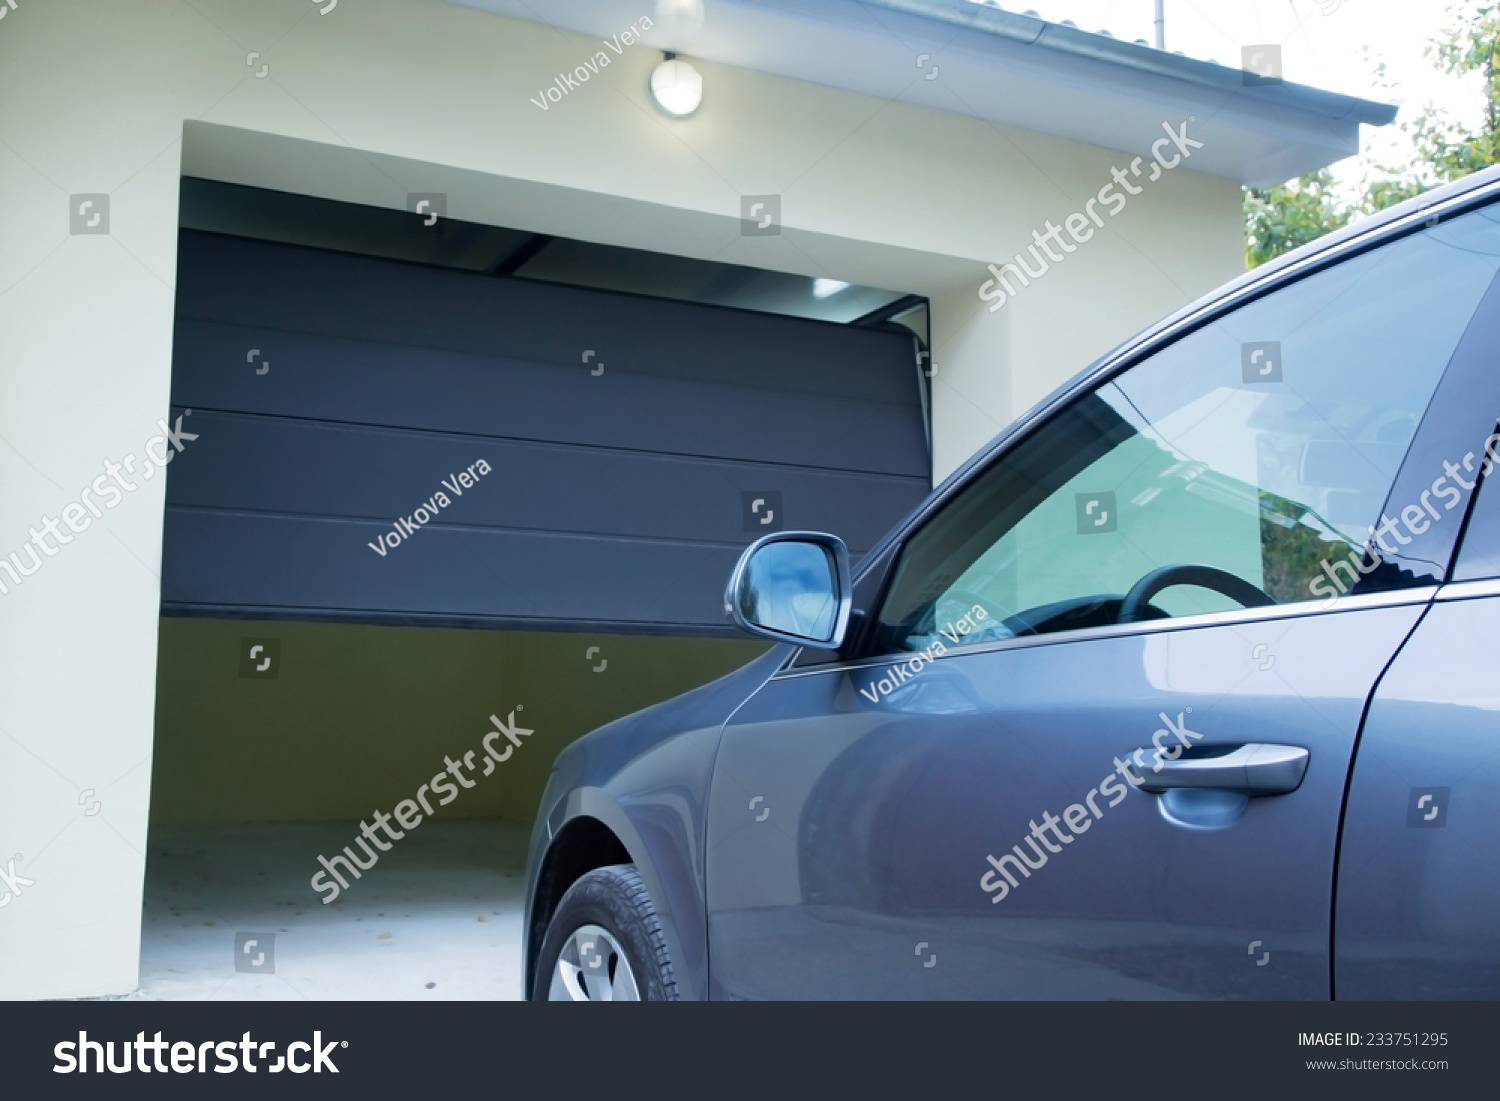 1100 #386793 Automatic Convenient Garage Doors Opening Car Stock Photo 233751295  wallpaper Garage Doors Electric Opening 36051500